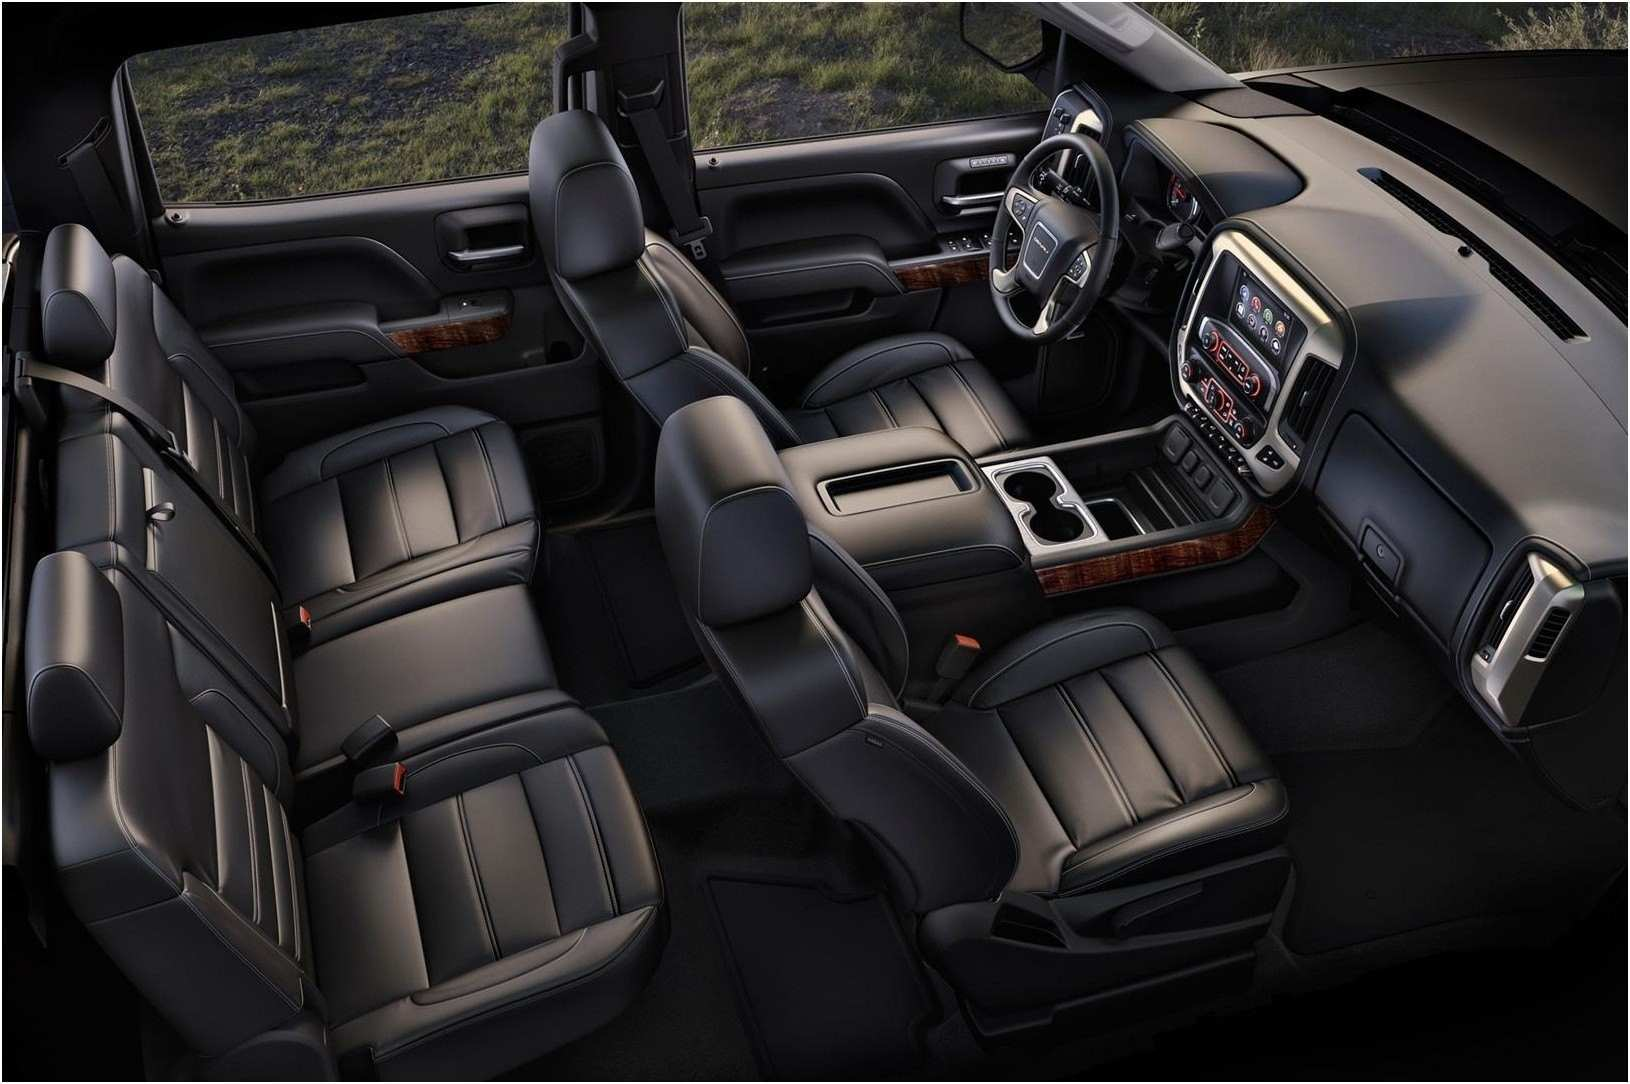 42 New The Gmc Yukon Diesel 2019 Redesign New Model And Performance